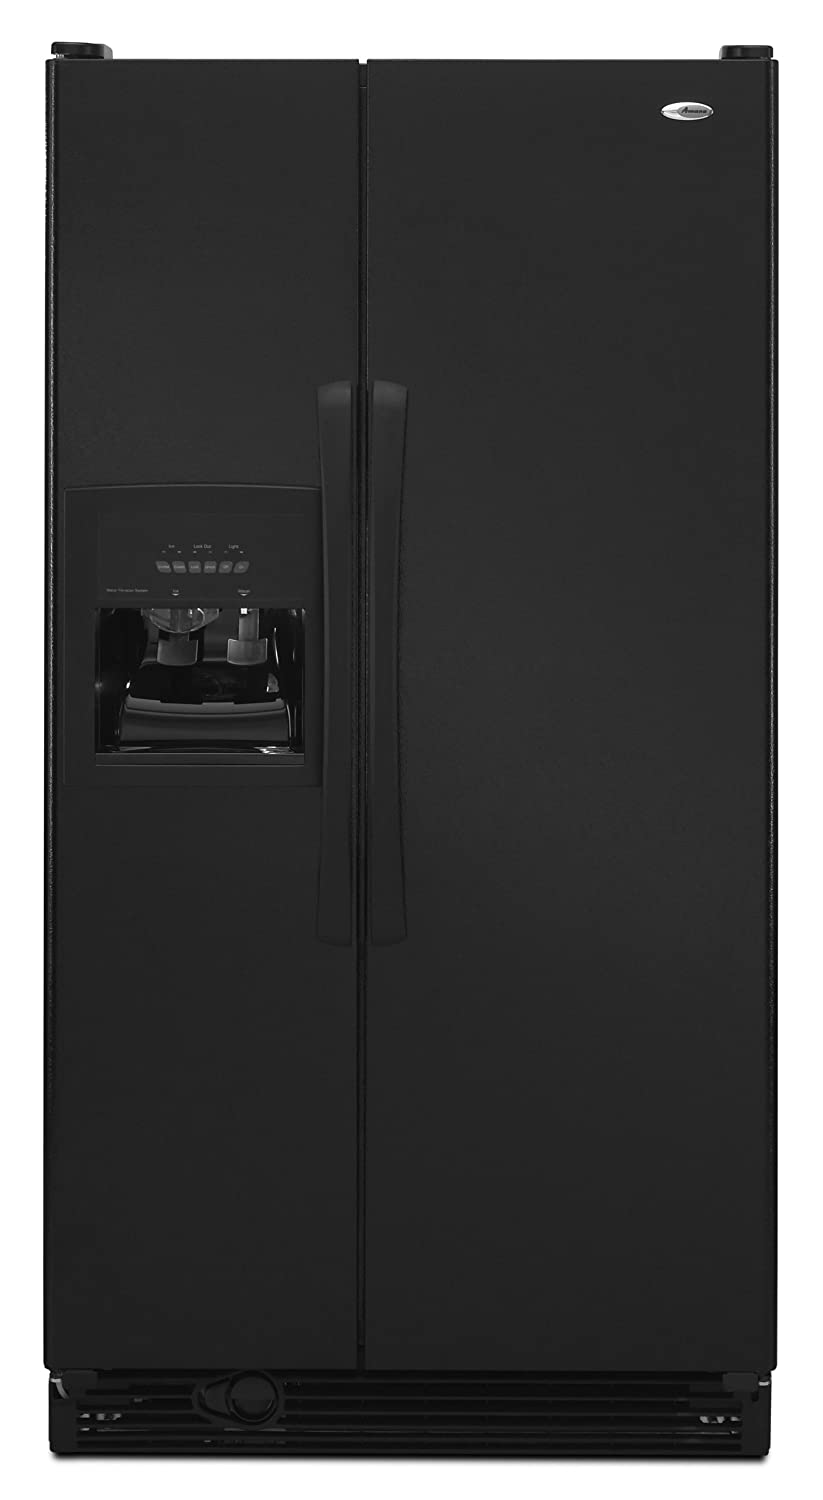 Amana side by side refrigerator reviews - Amazon Com Amana 25 Cubic Foot Side By Side Refrigerator Asd2522wrb Black Appliances